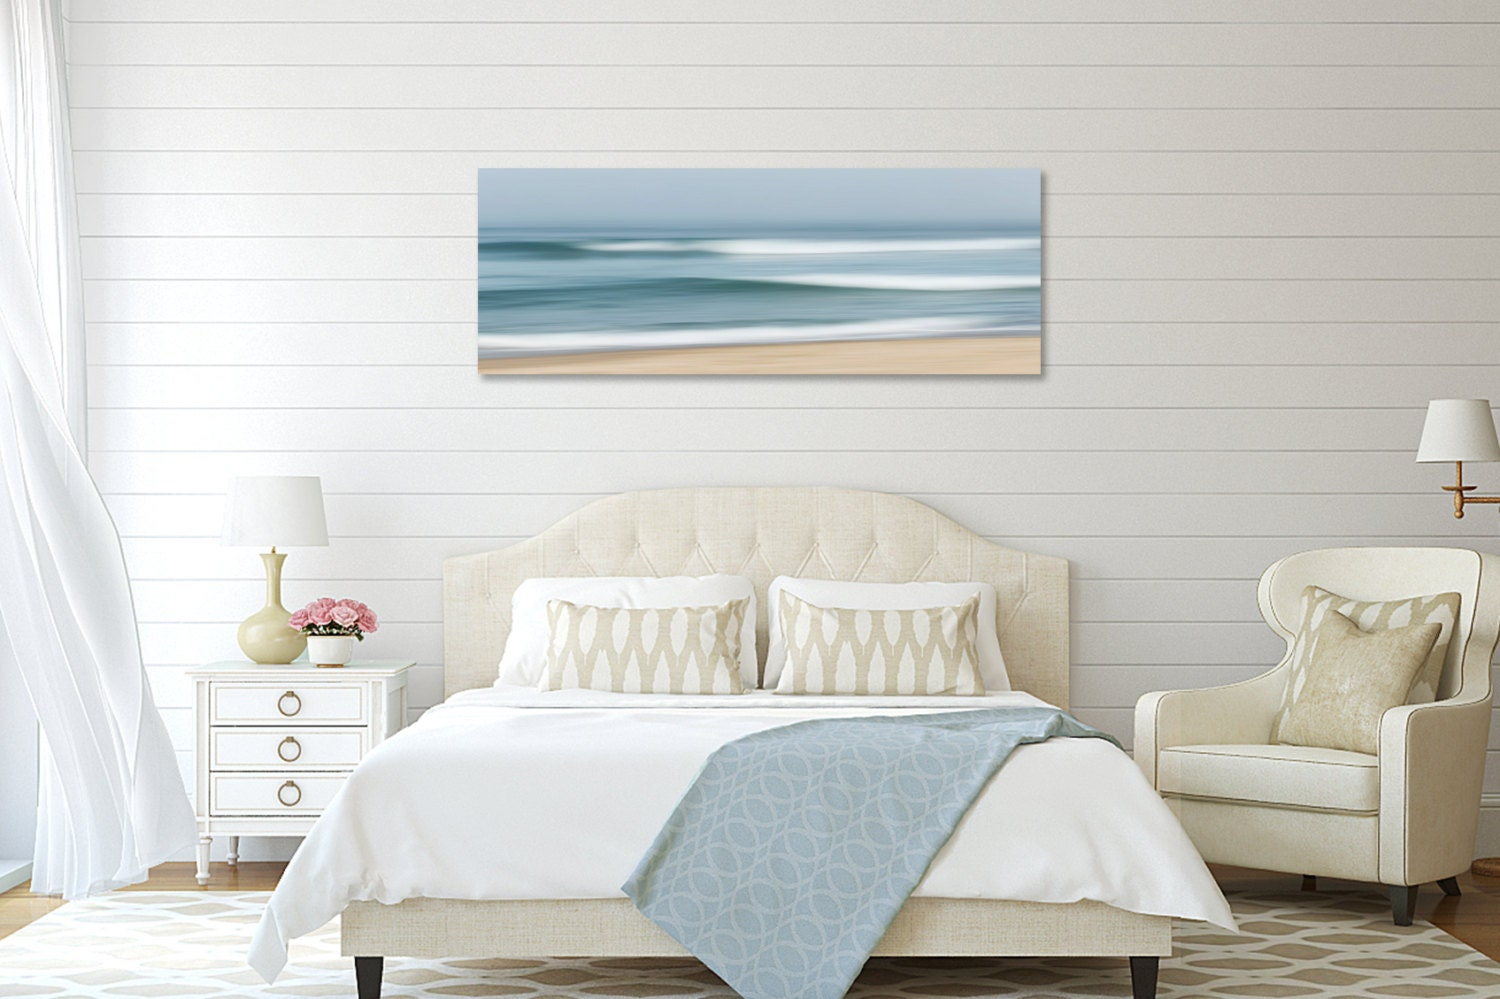 Coastal Wall Decor: Coastal Wall Decor Large Abstract Beach Canvas Wall Art